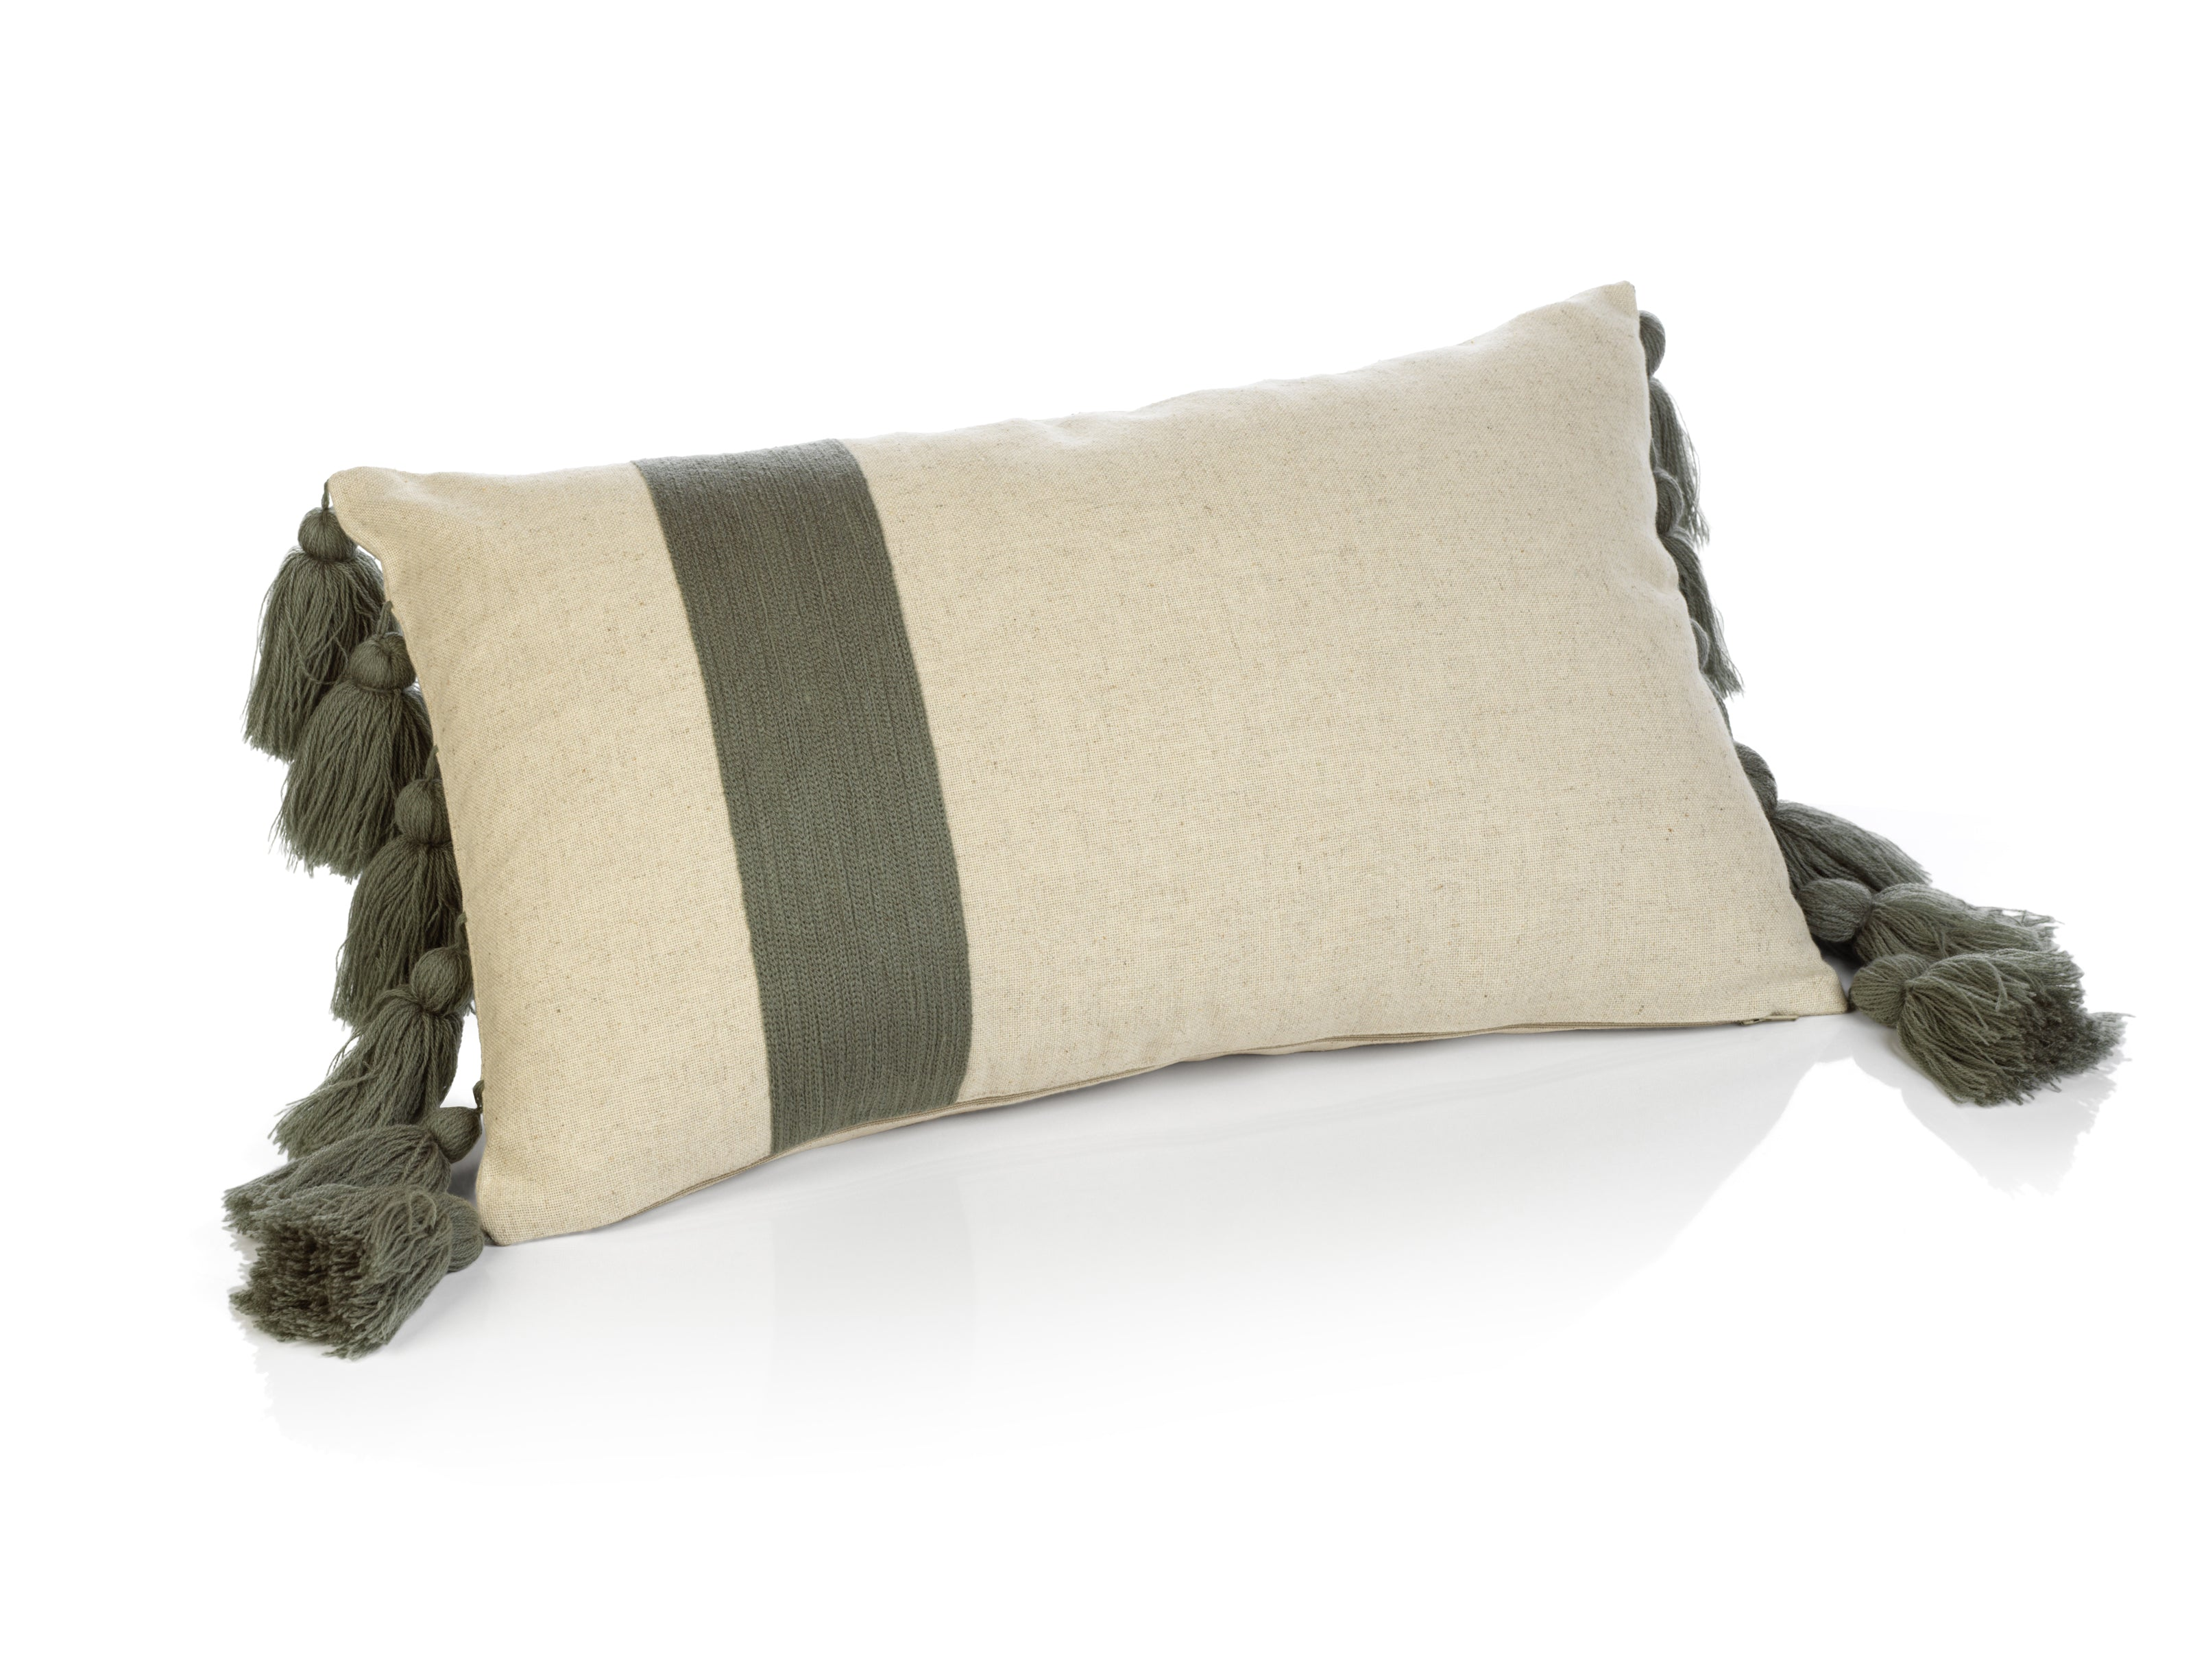 Polignano Embroidered Throw Pillow w/Tassels - Sage - CARLYLE AVENUE